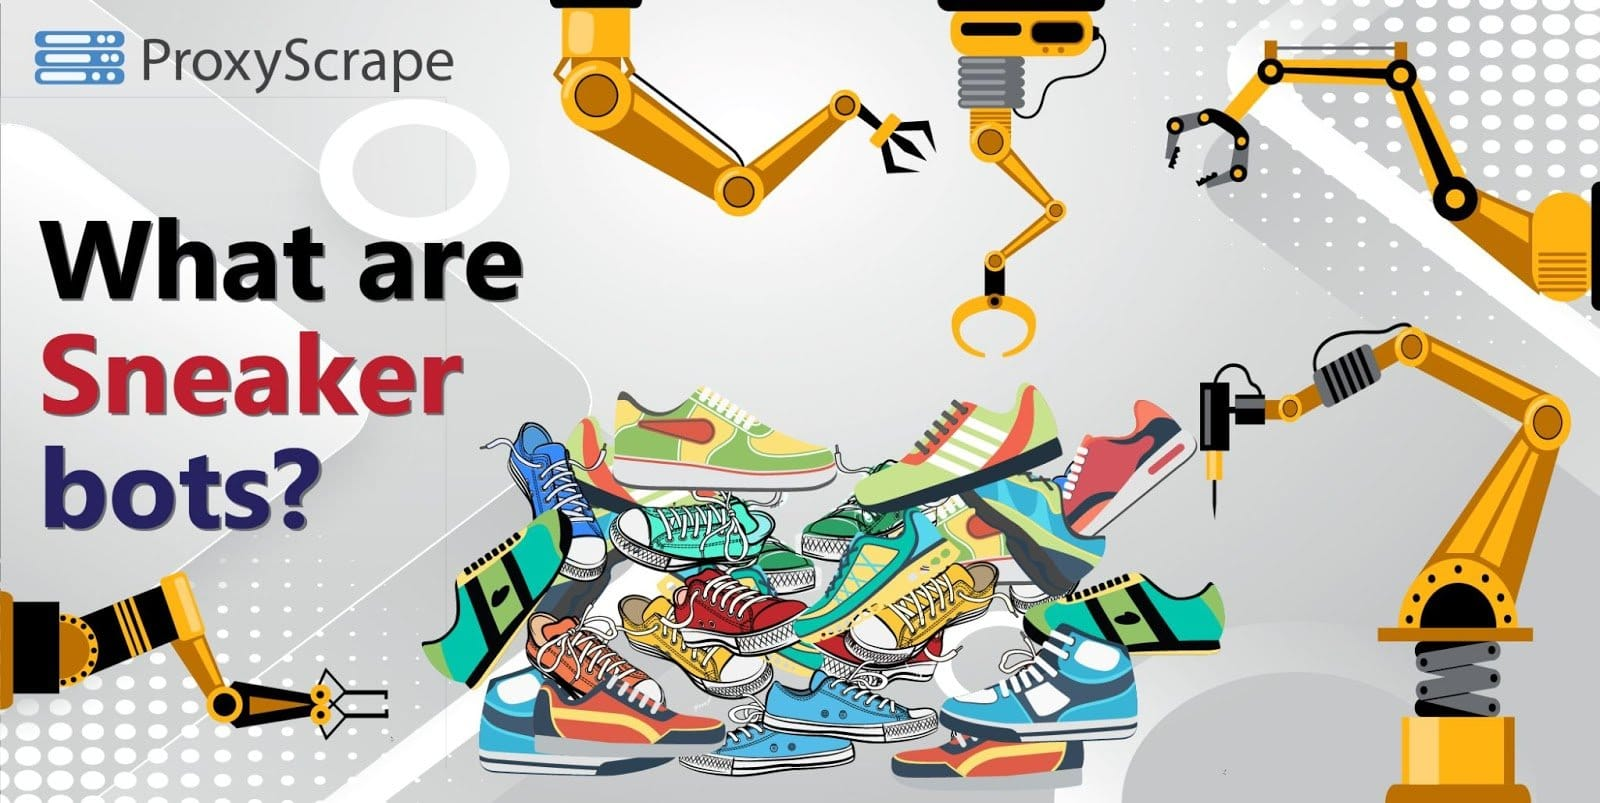 what are sneaker bots